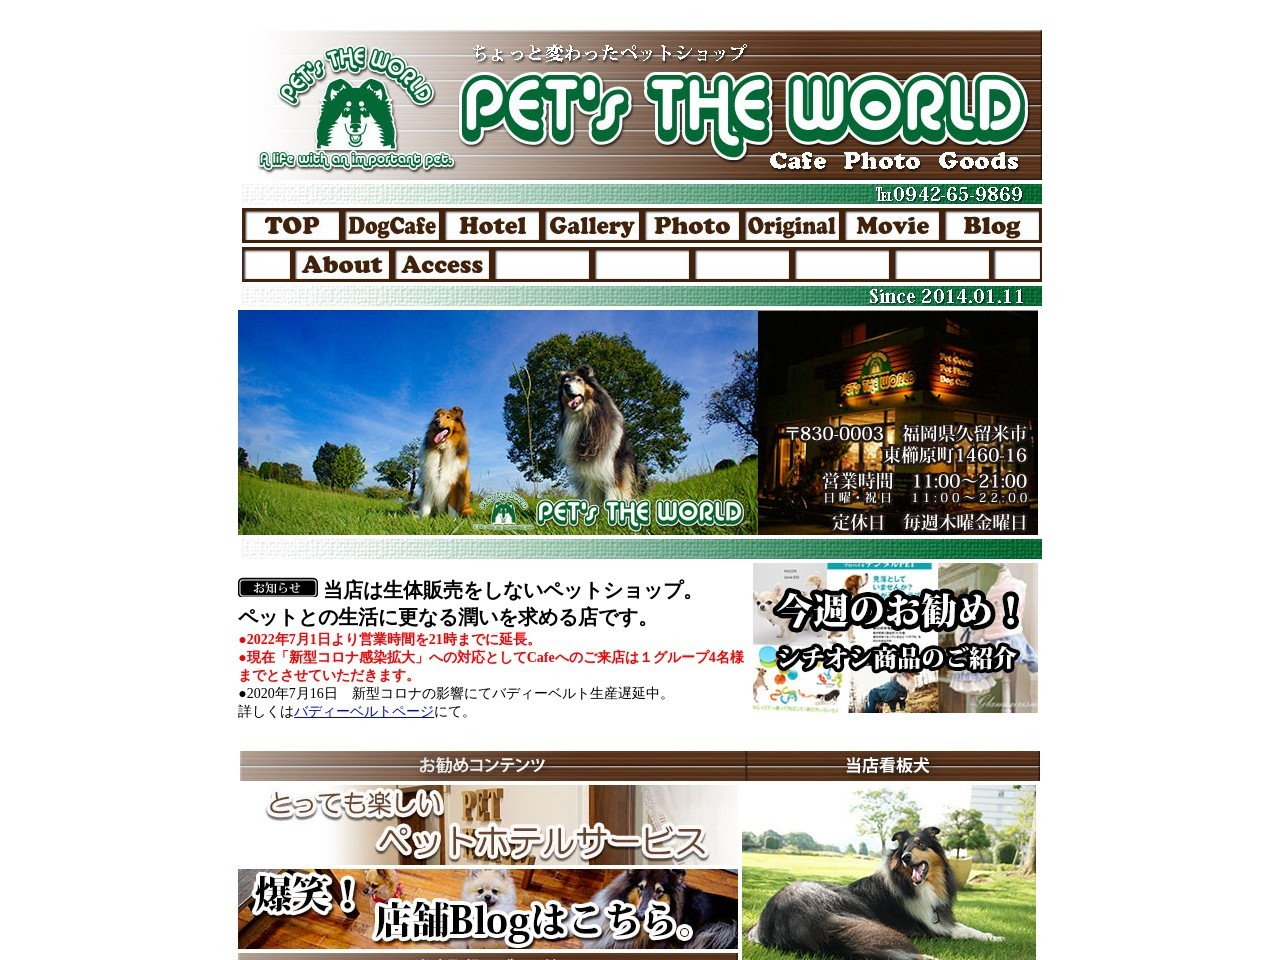 ペッツ(PET.s)THEWORLD